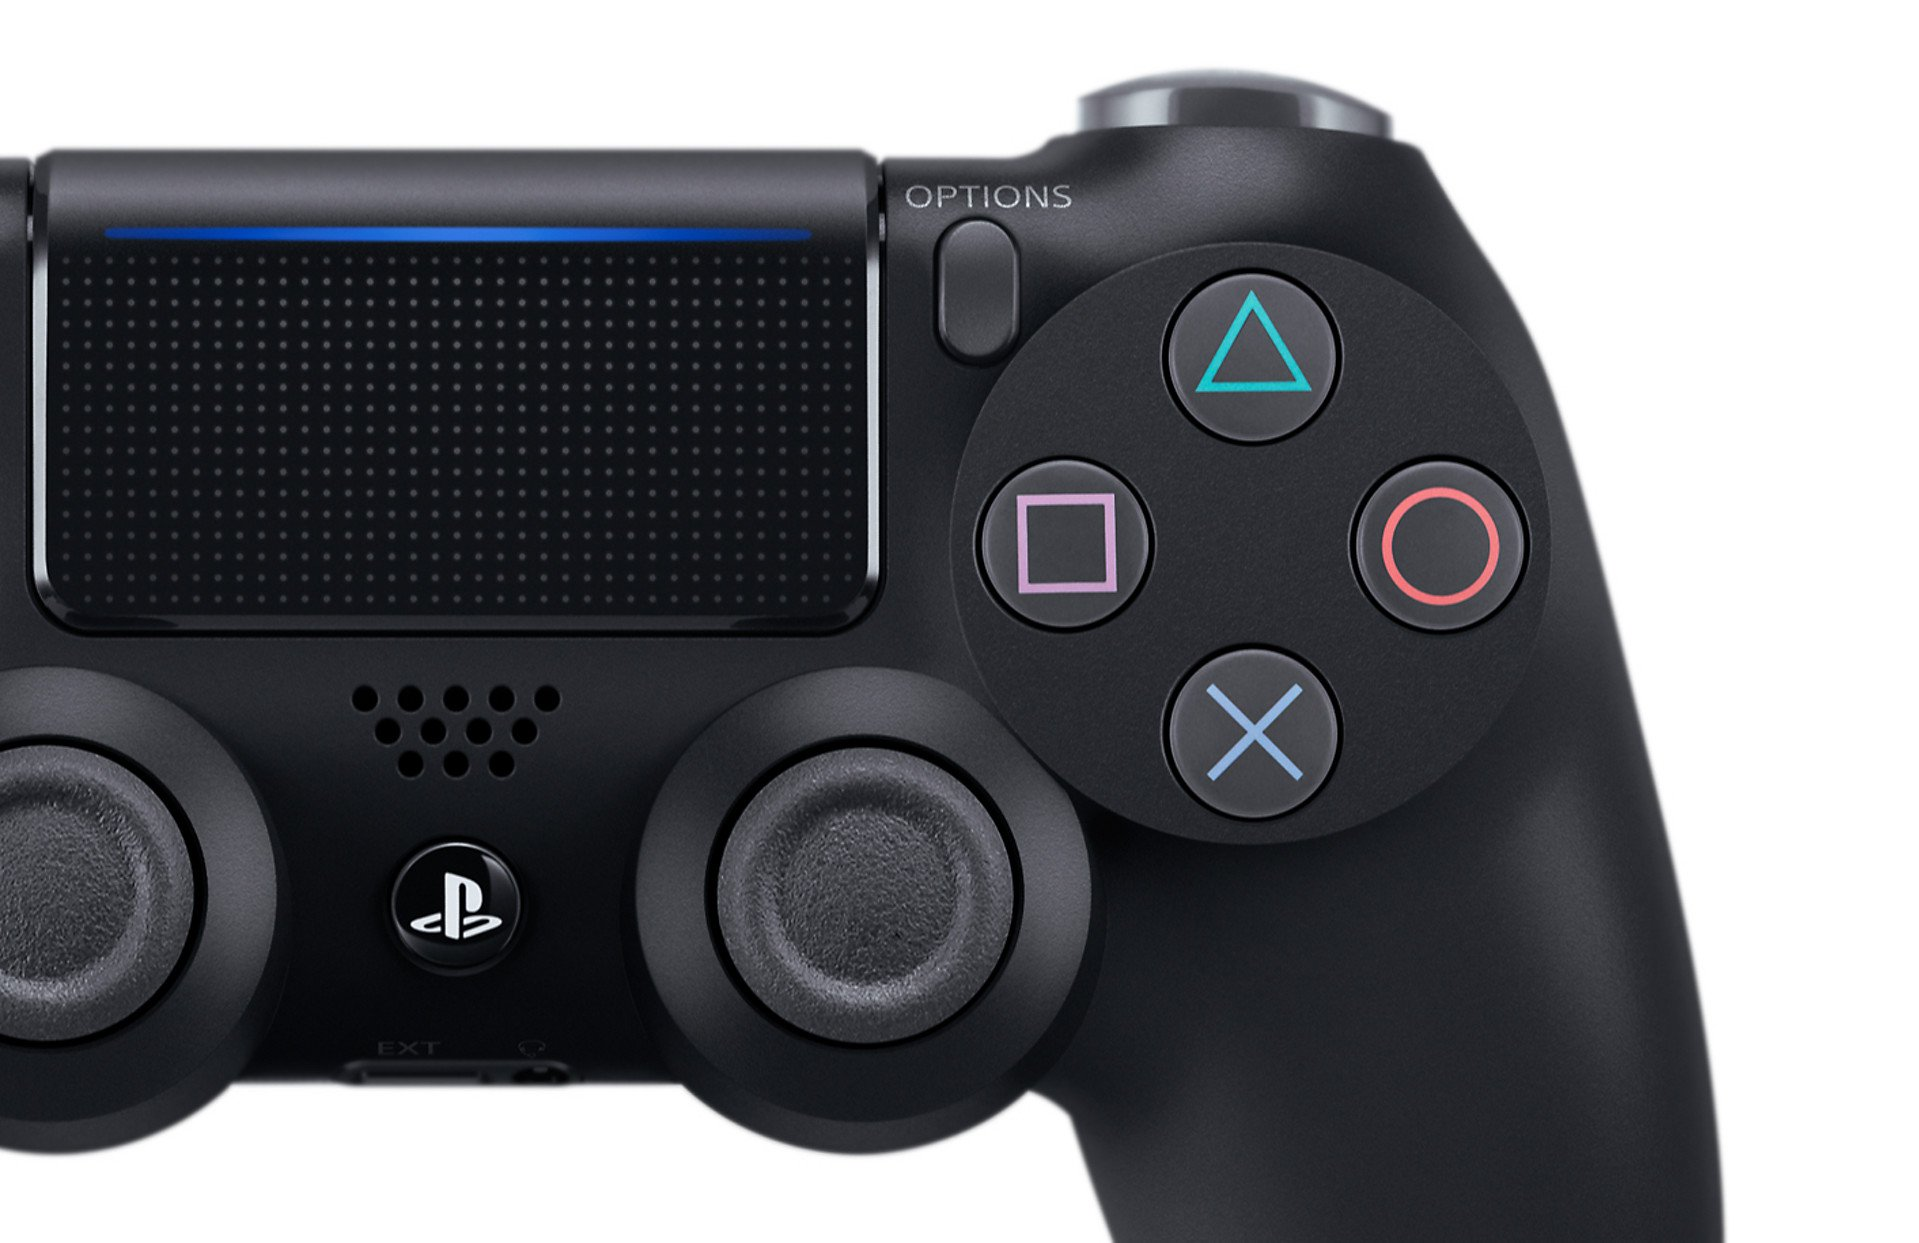 The PS5 will be more energy efficient than the PS4 across the board.